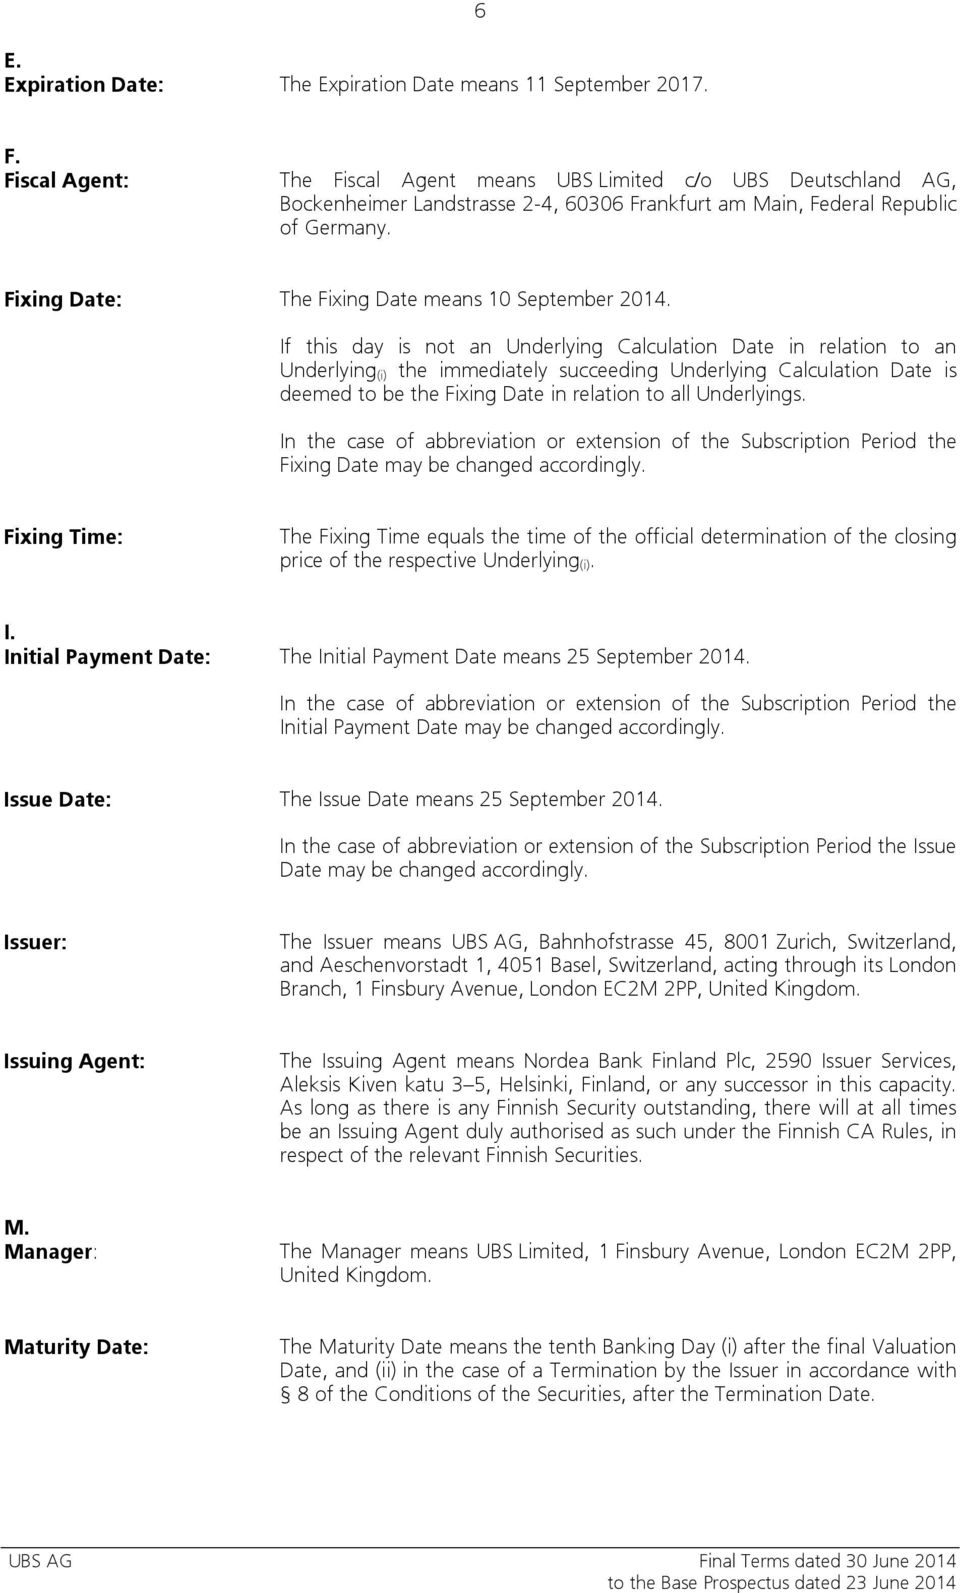 Fixing Date: The Fixing Date means 10 September 2014.